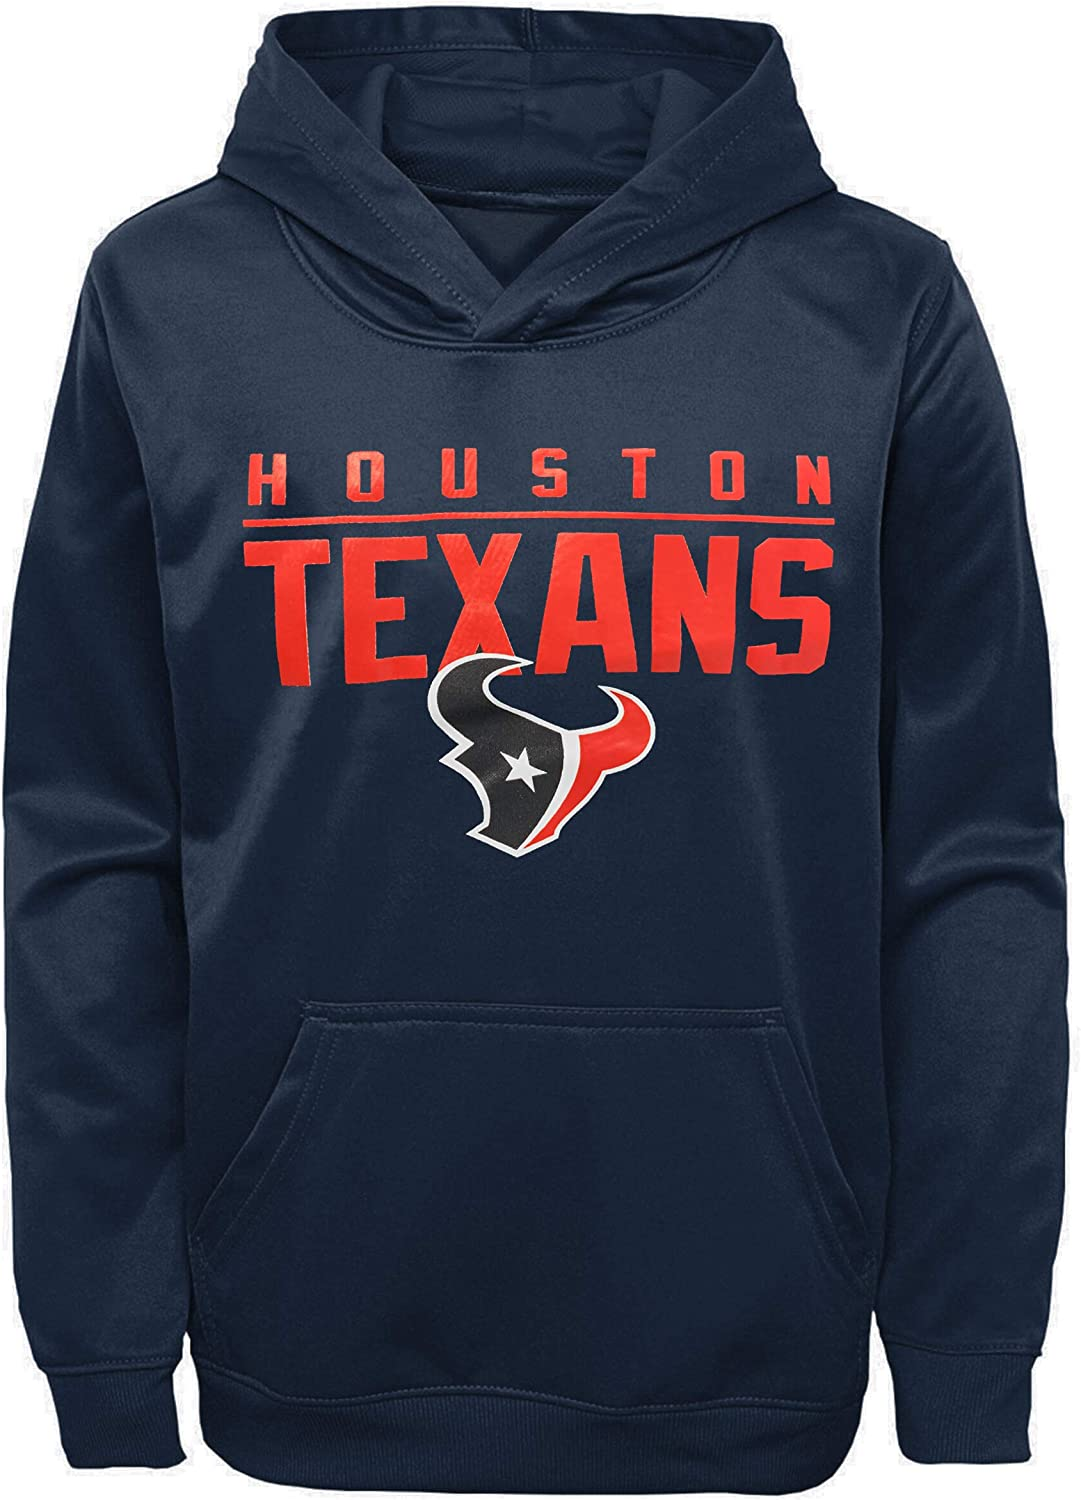 OuterStuff NFL Youth 8-20 Performance Pacesetter Pullover Sweatshirt Hoodie